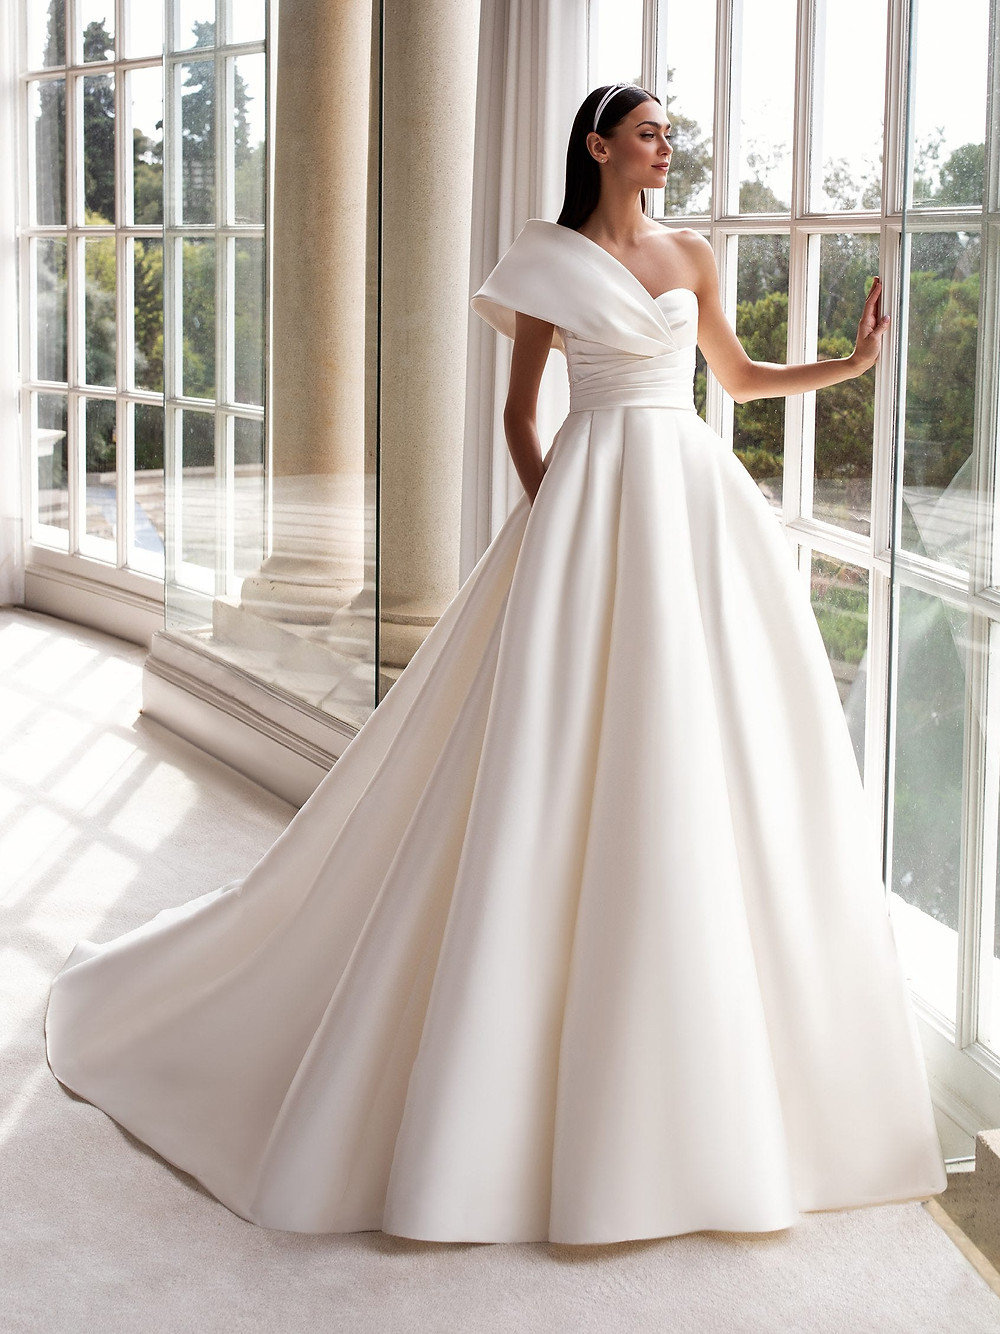 A Pronovias one shoulder, ball gown wedding dress with large skirt